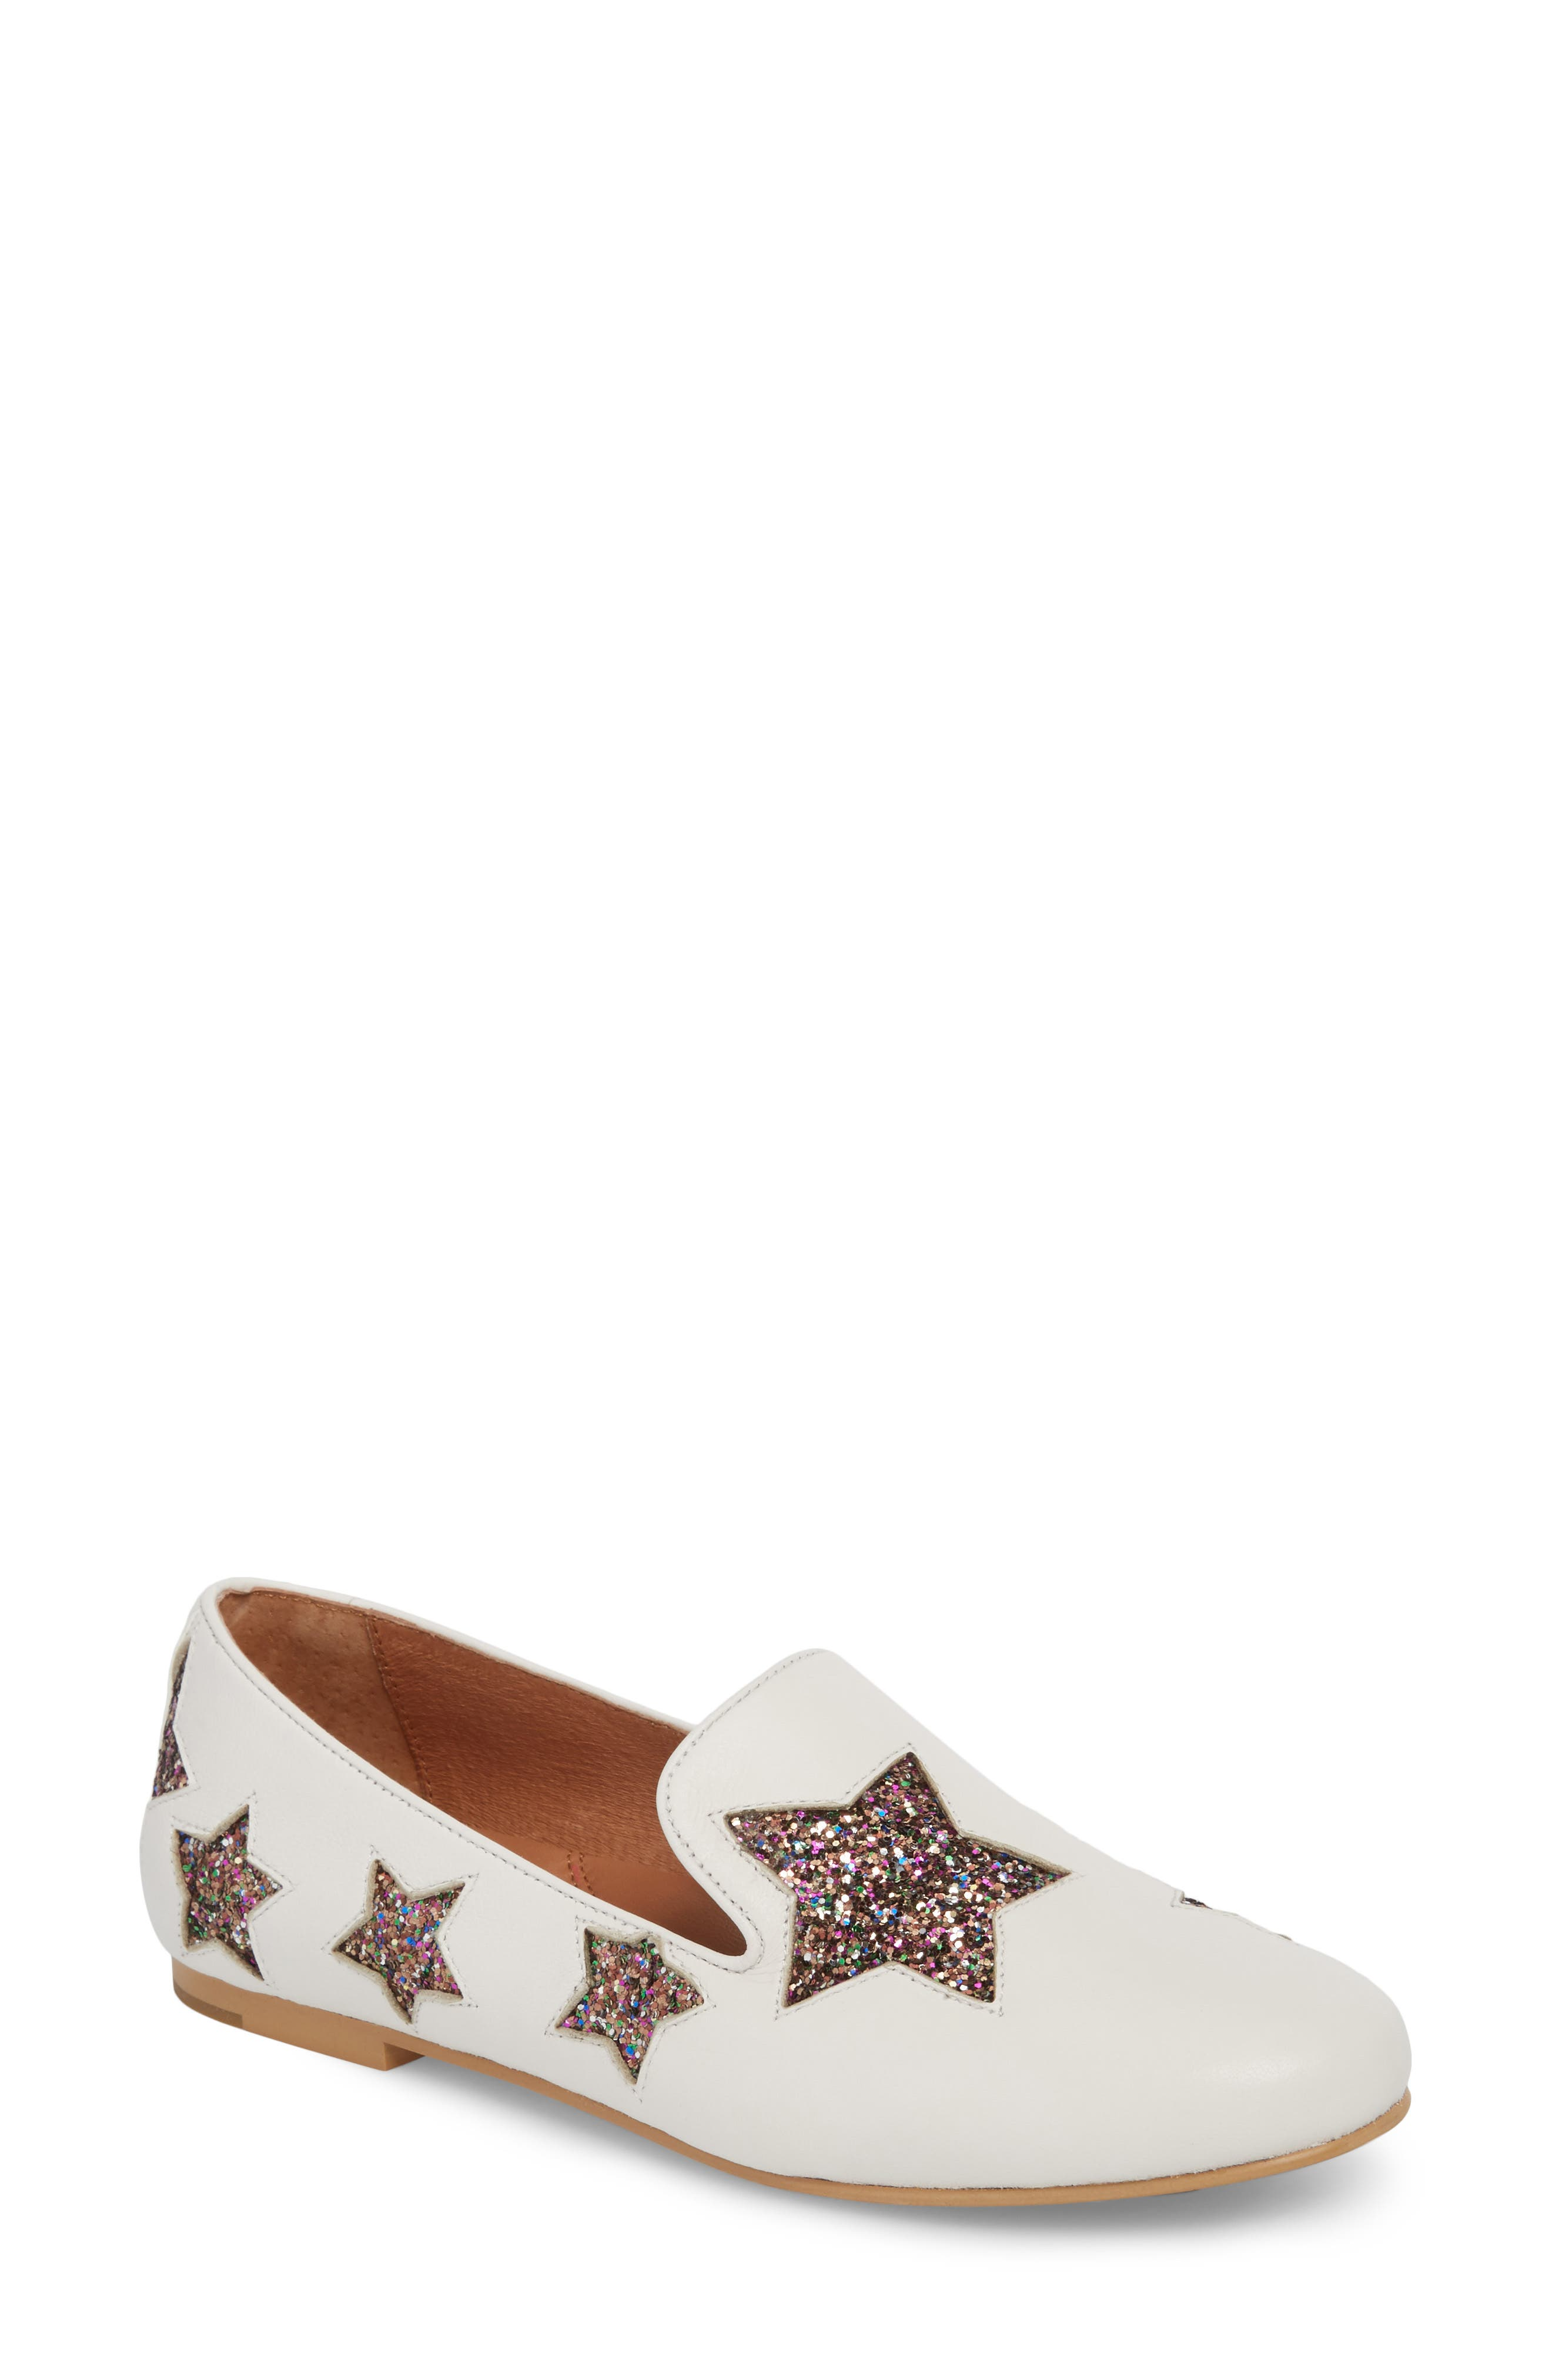 GENTLE SOULS BY KENNETH COLE Eugene Stars Flat, Main, color, WHITE STARS LEATHER